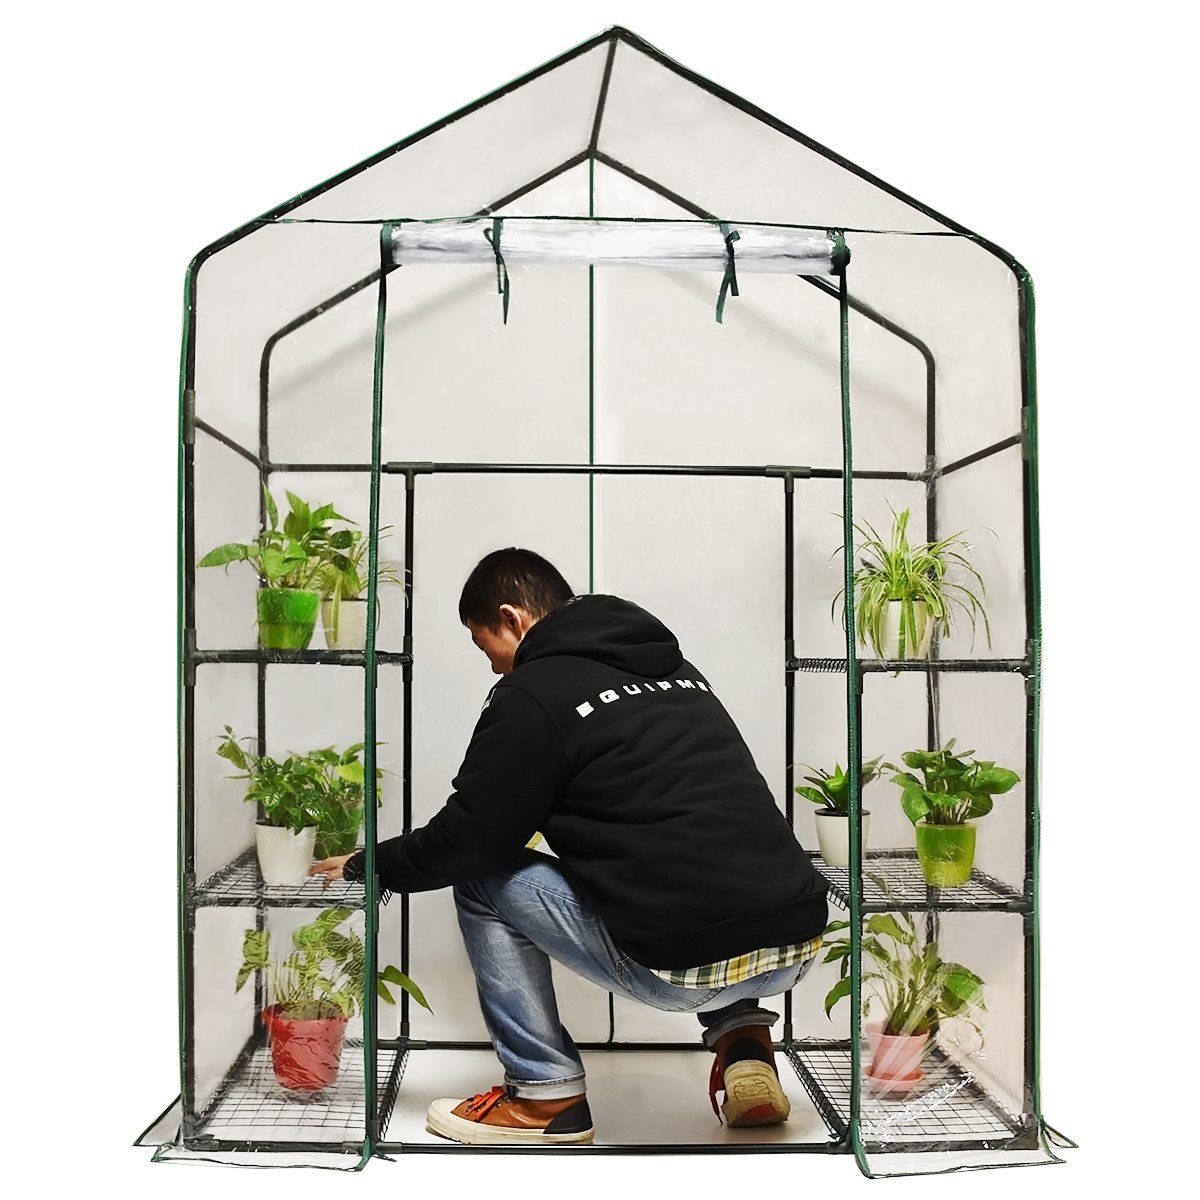 Quictent Greenhouse Mini Walk-In 3 tiers 6 shelves 102lbs Max Weight Capacity Portable Plastic Garden Outdoor Green House 56''x29''x77''